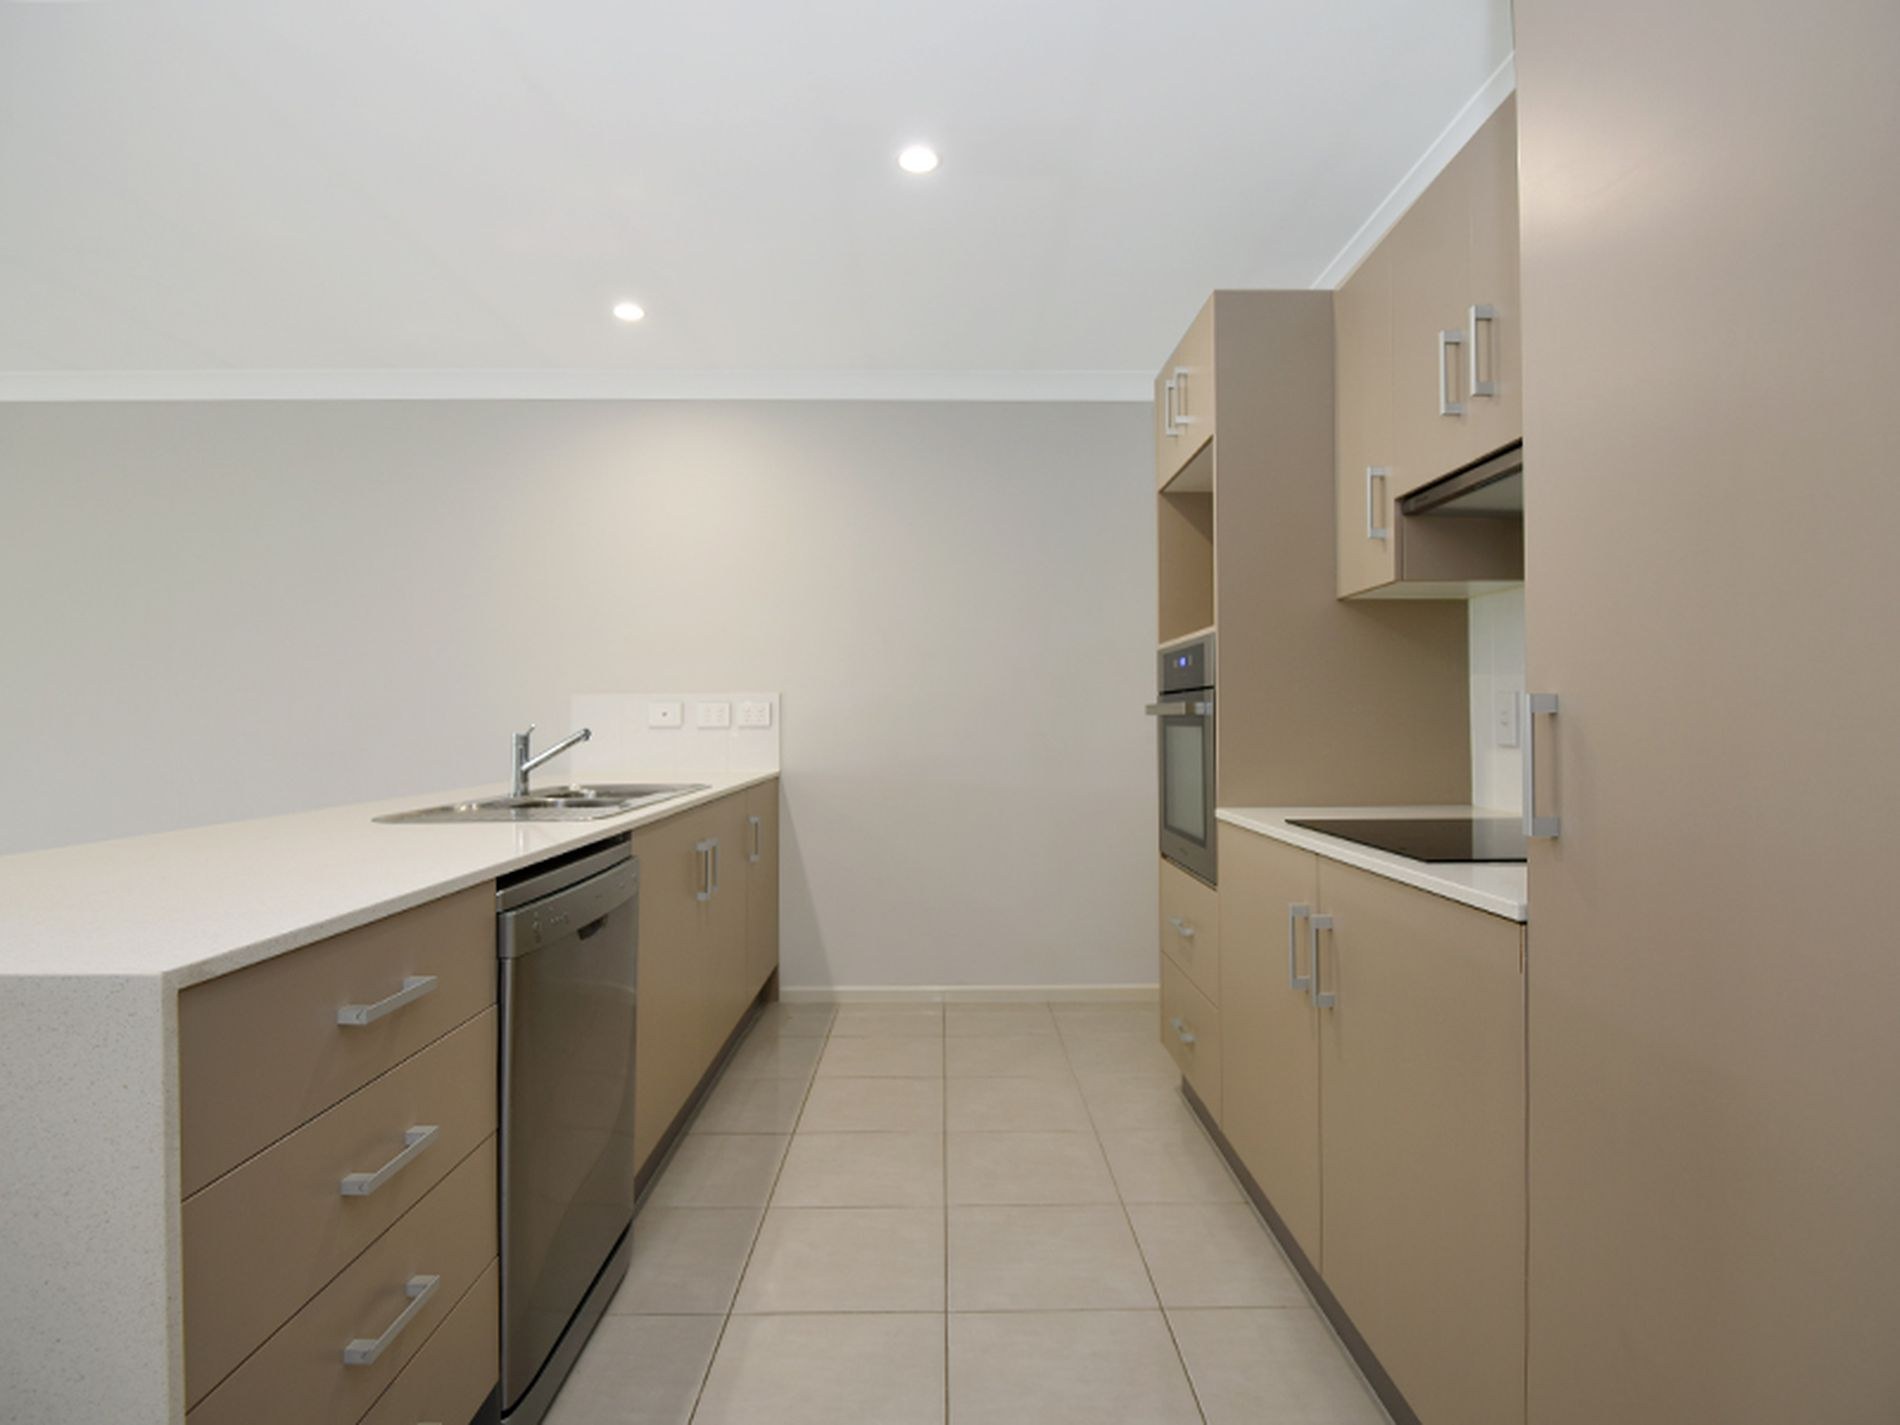 1 / 285A Alderley Street, South Toowoomba